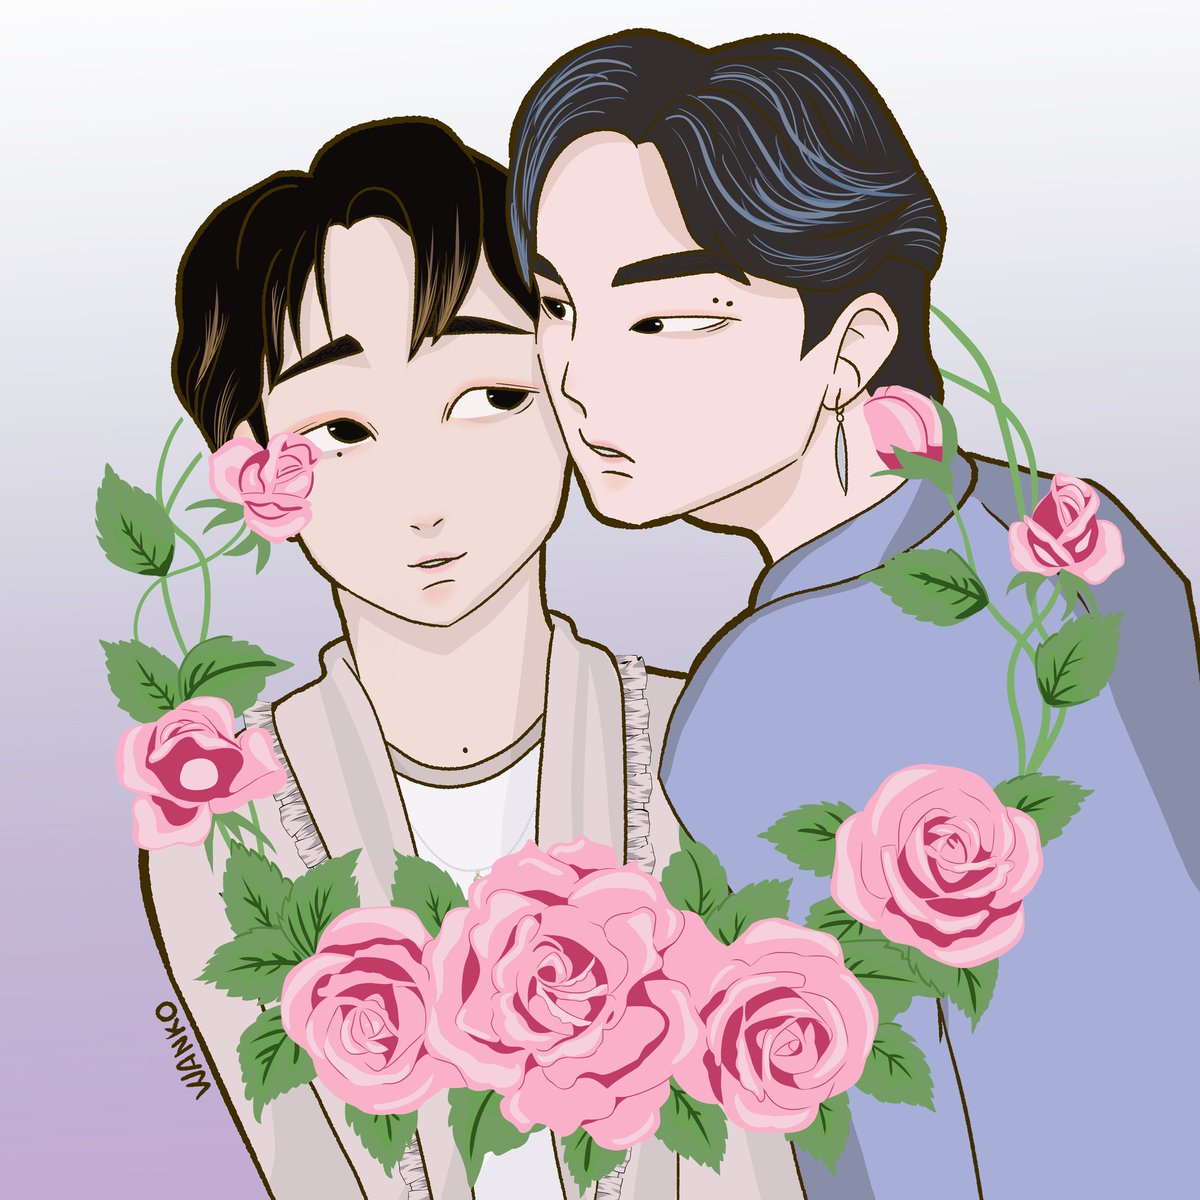 And another one~   #Lullaby #Got7 #2Jae #영재 #JB<br>http://pic.twitter.com/HjGvWmti2w